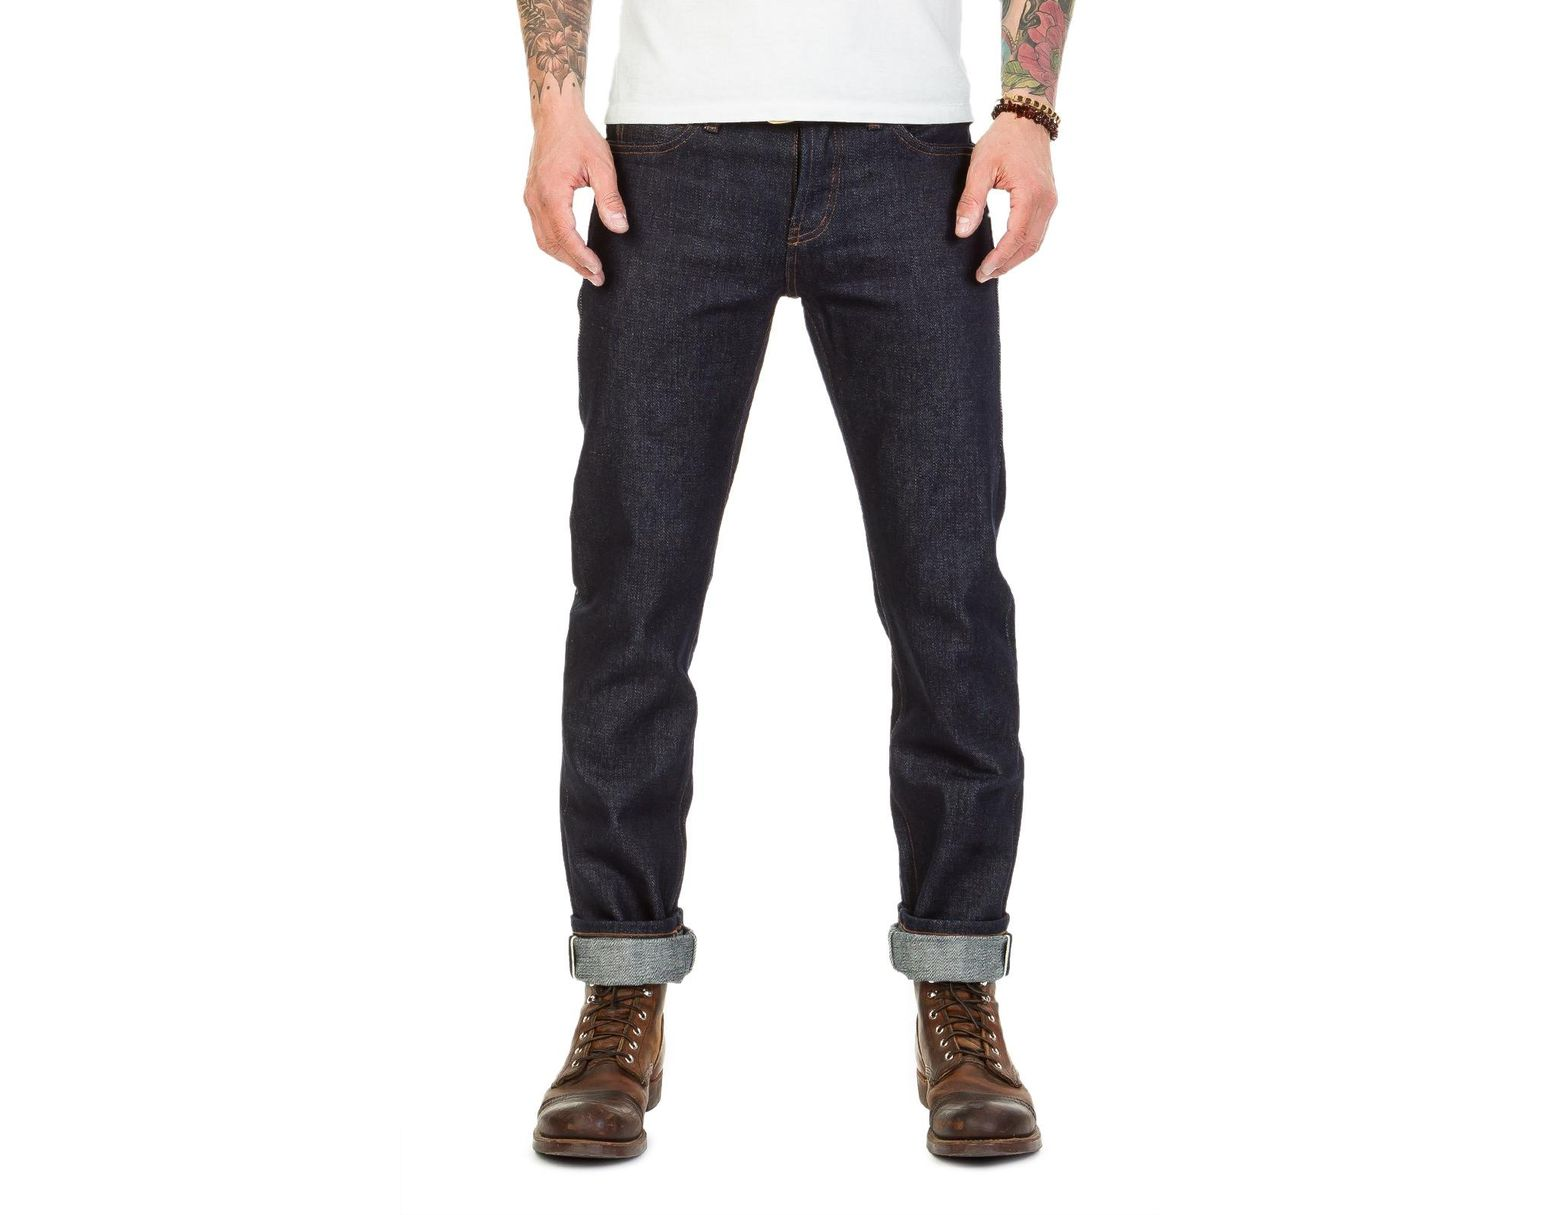 8db2dc6c The Unbranded Brand Unbranded Ub121 Skinny Fit Heavyweight Selvage Indigo  21oz in Blue for Men - Save 1% - Lyst